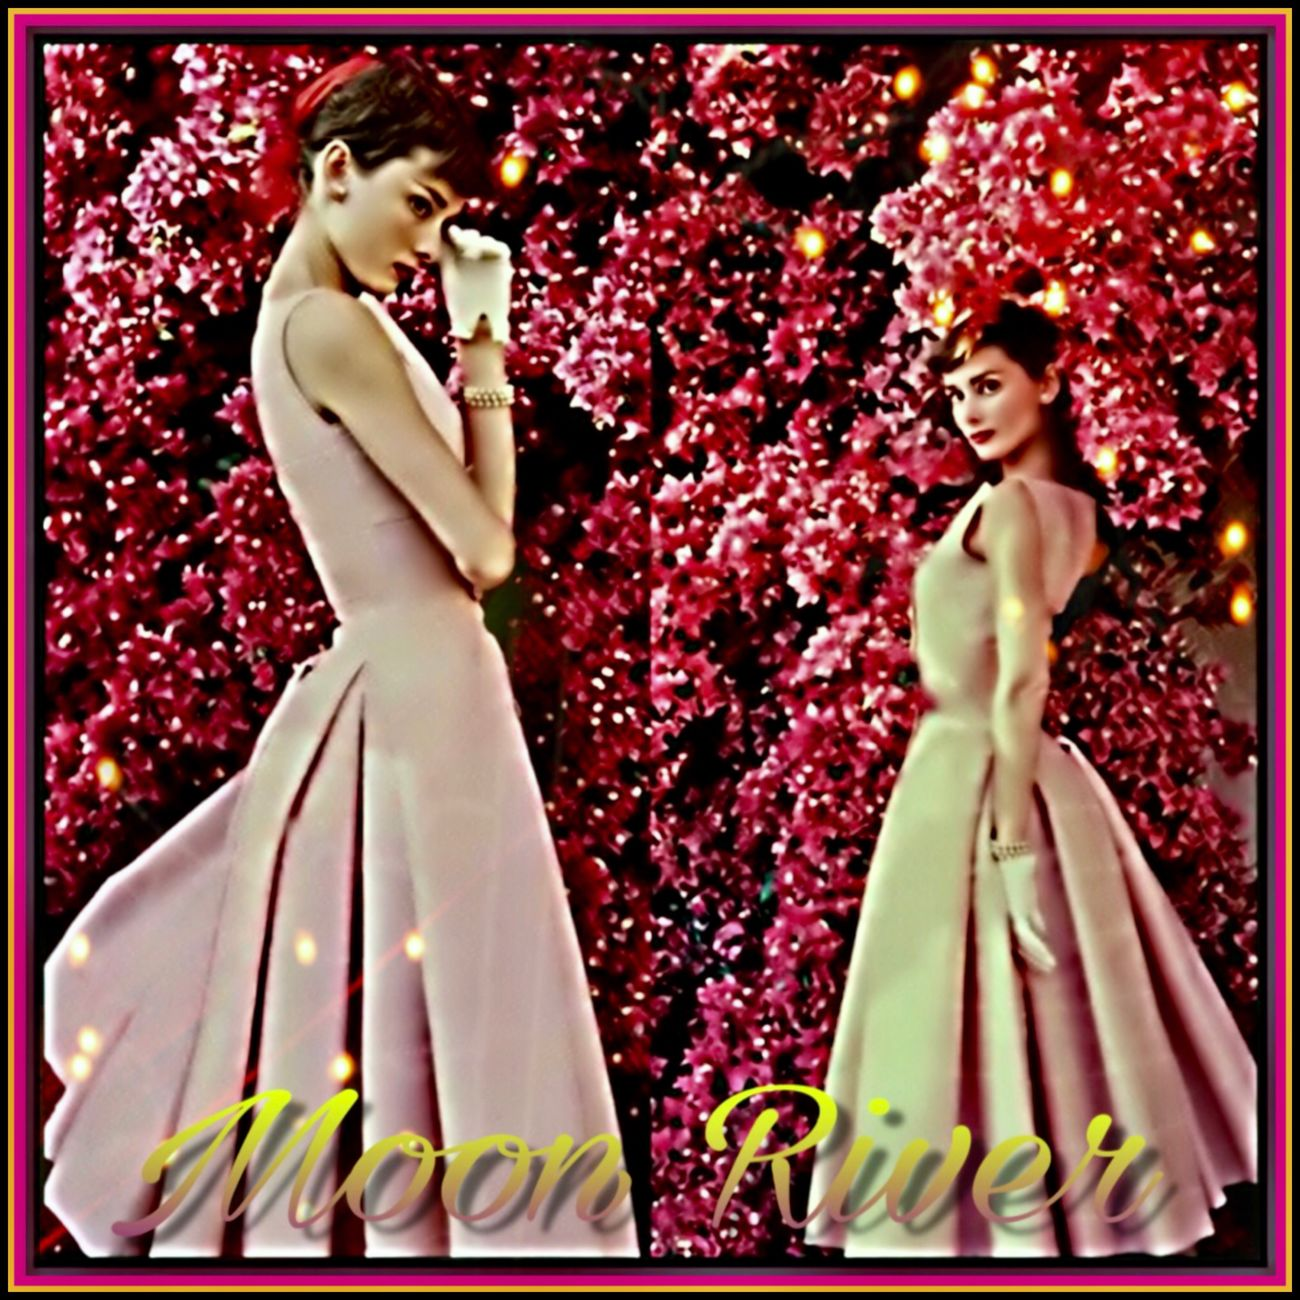 Spent the Saturday night in and watched Breakfast at Tiffany's. Love these picture's of Audrey Hepburn 💙💜💚 Audrey Hepburn Vintage Photo Flowers Celebrity Breakfastattiffanys Moviebinge Picsart Beautiful Moonriver Classics